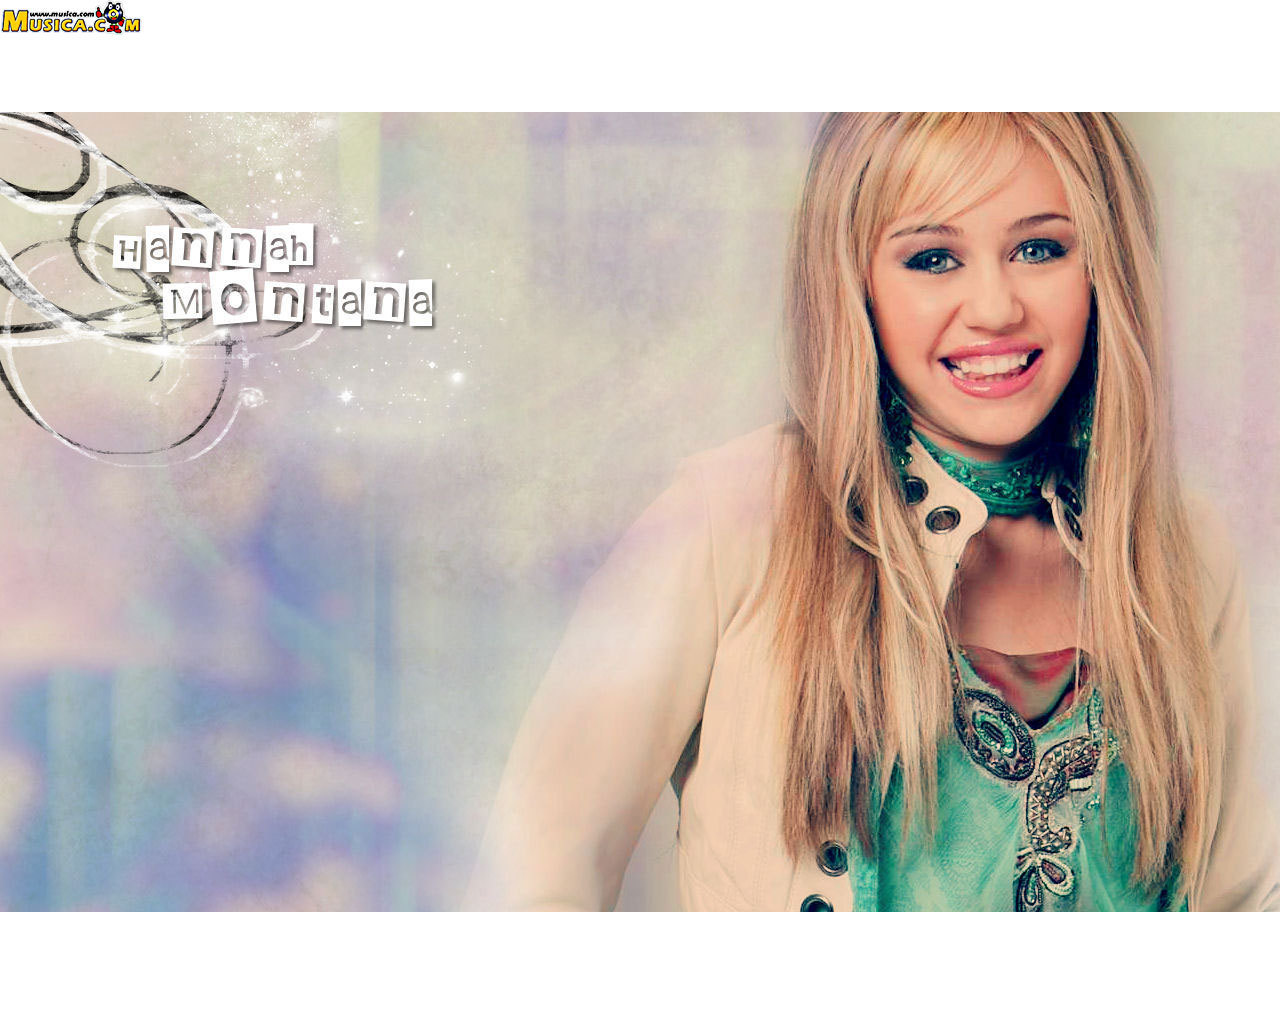 cool images hannah montana - photo #36